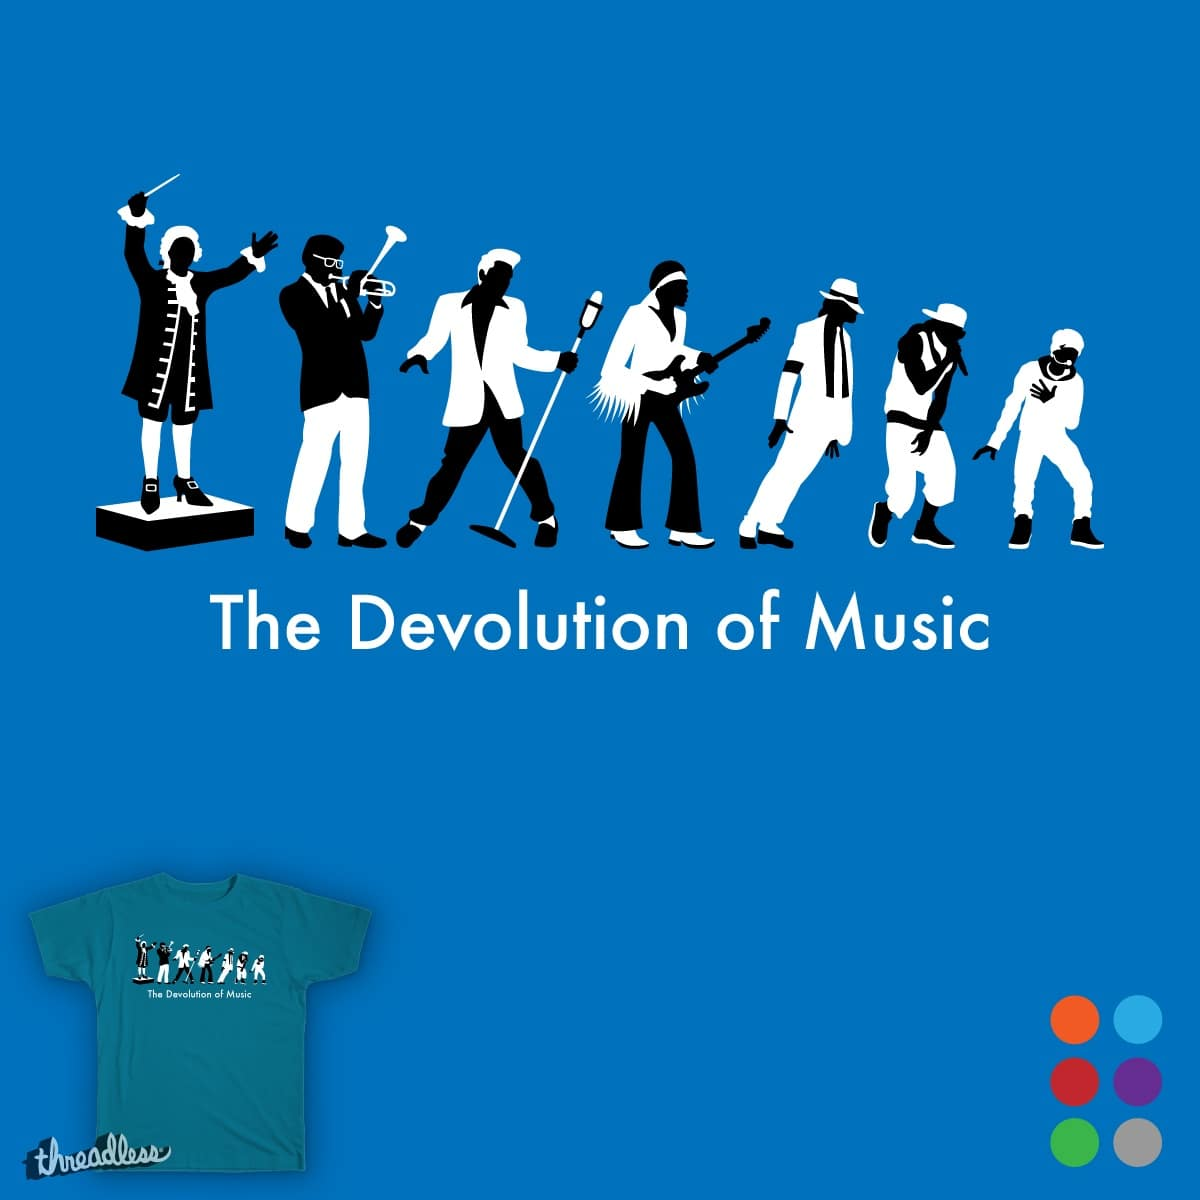 The Devolution of Music by Wakonda on Threadless